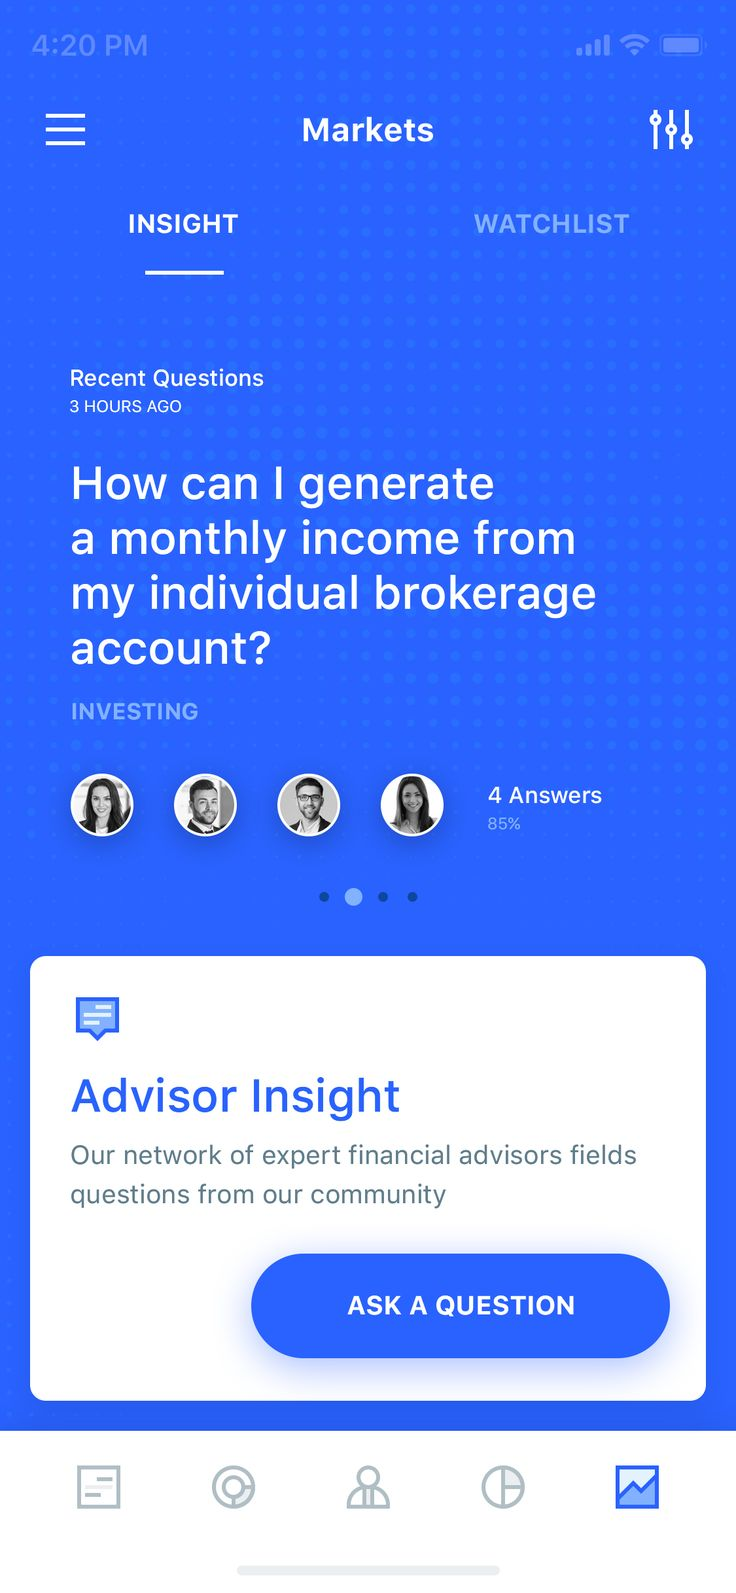 Markets insight offer a Q&A feature contributed by a group of notorious advisor on the game which also equipped with a wide range selection of instruments. You can even trade in crypto, indices...